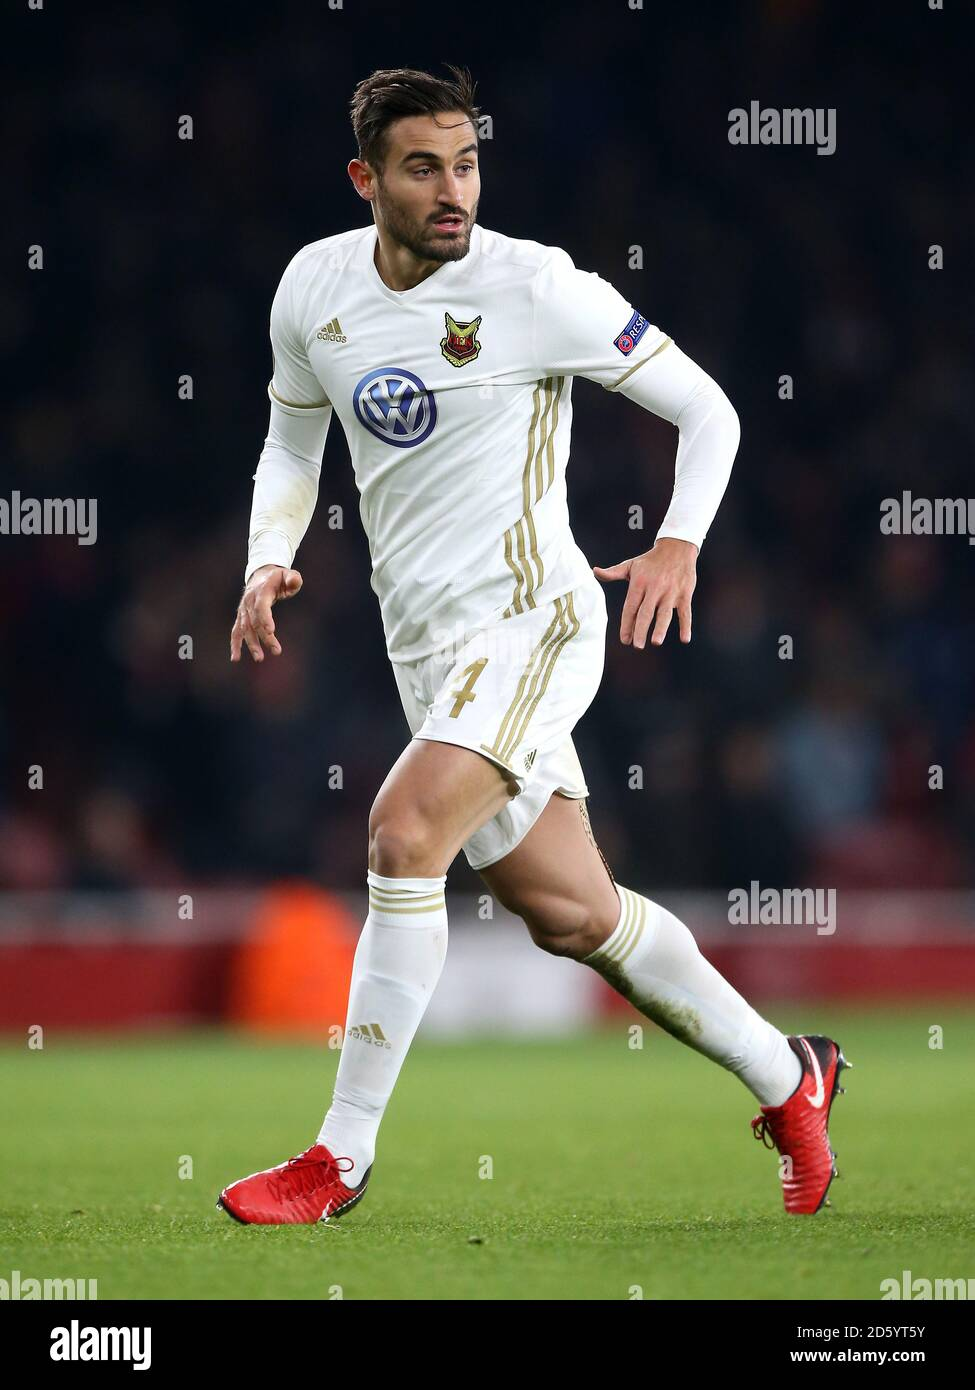 Ostersunds FK's Sotirios Papagiannopoulos Stock Photo